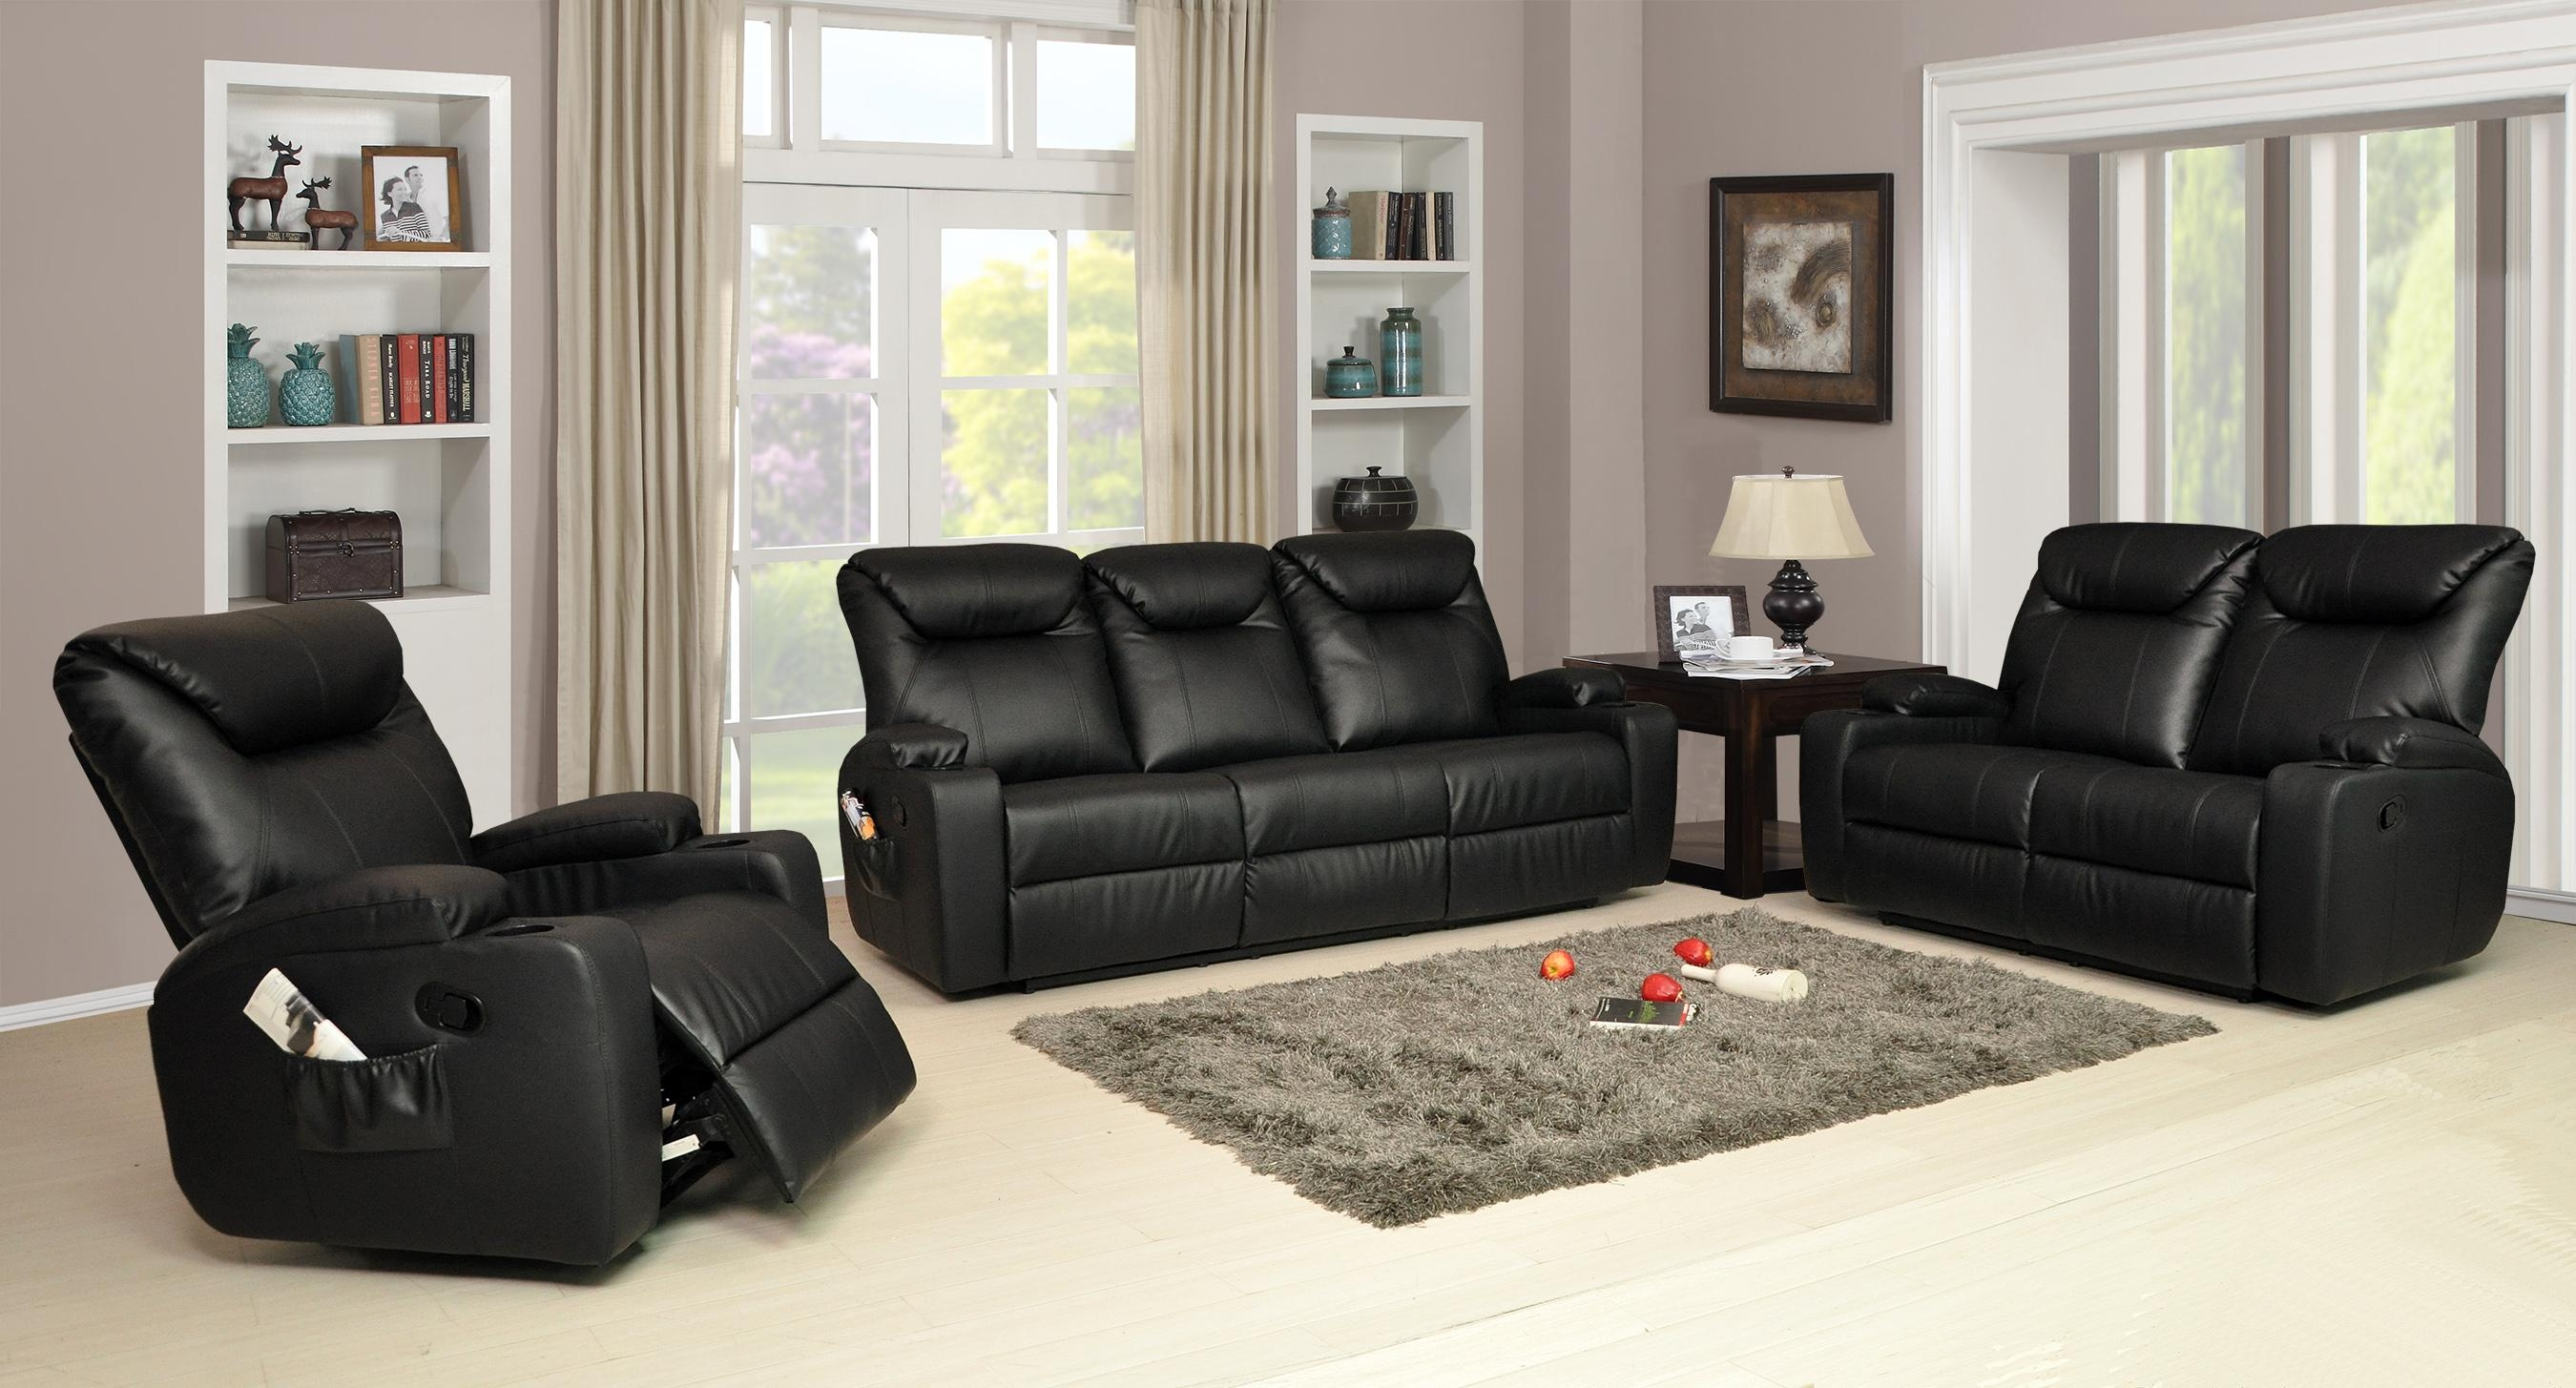 Sofas Center : Lazy Boy Sofas And Loveseats Sets For Small Spaces For Lazy Boy Sofas (Image 15 of 20)